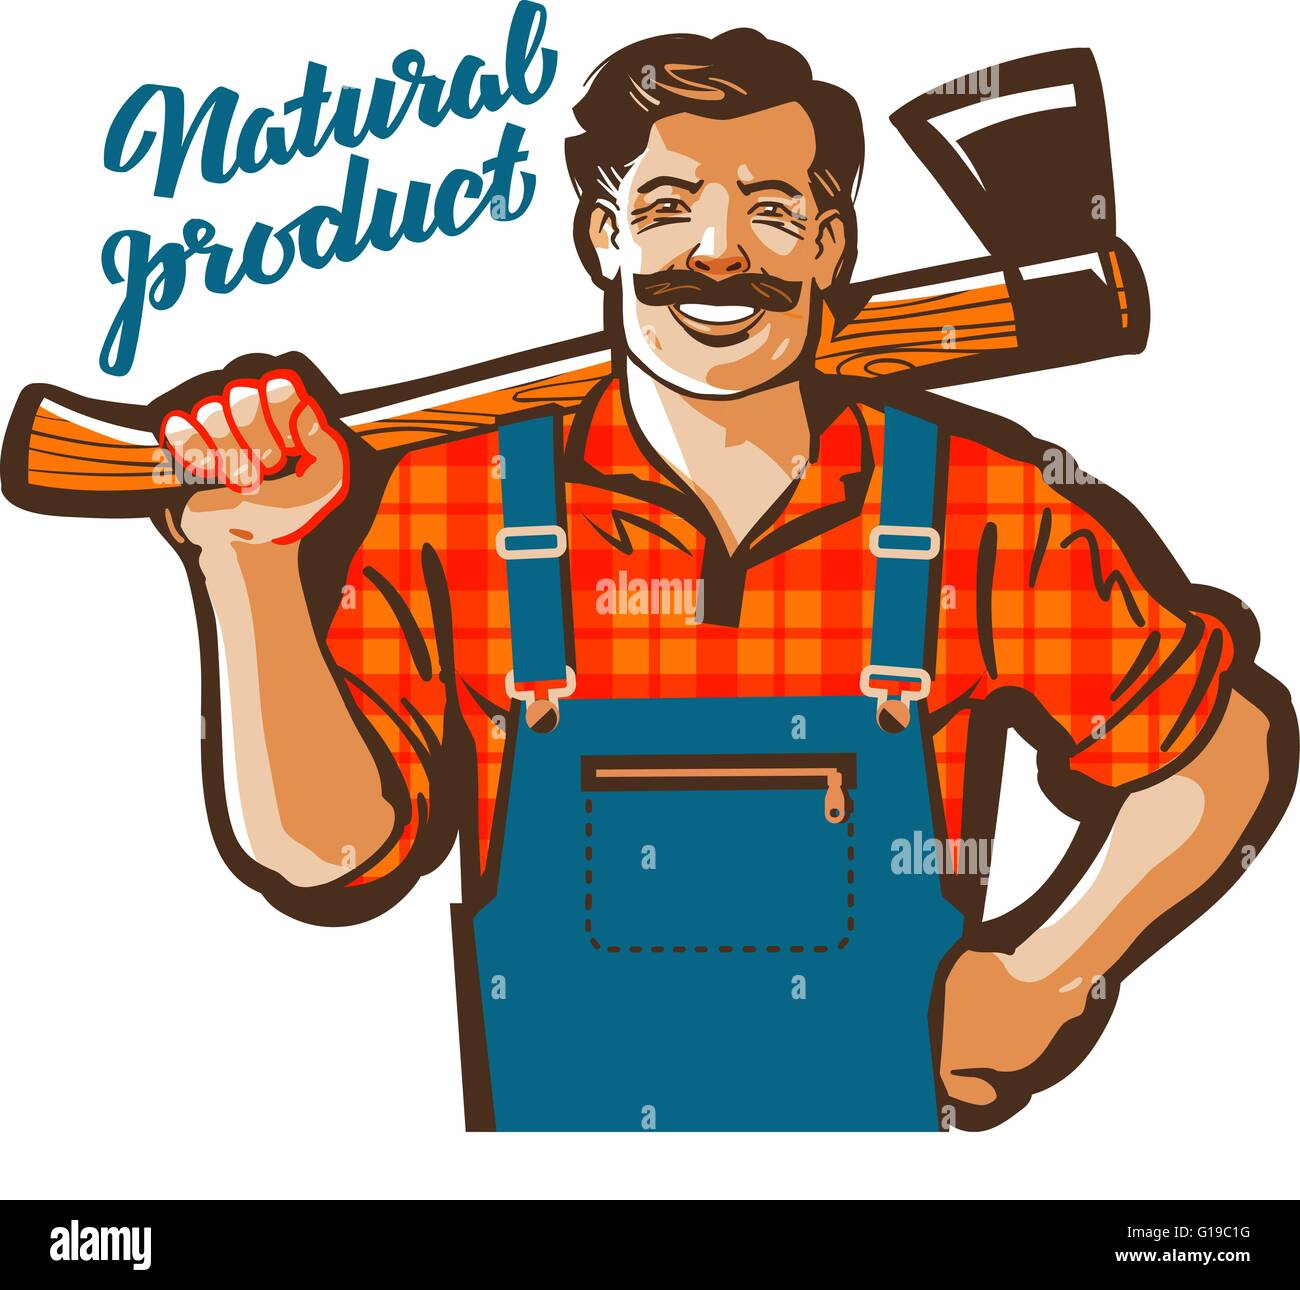 Tischler Comic Carpenter Cartoon Vector Illustration Stockfotos